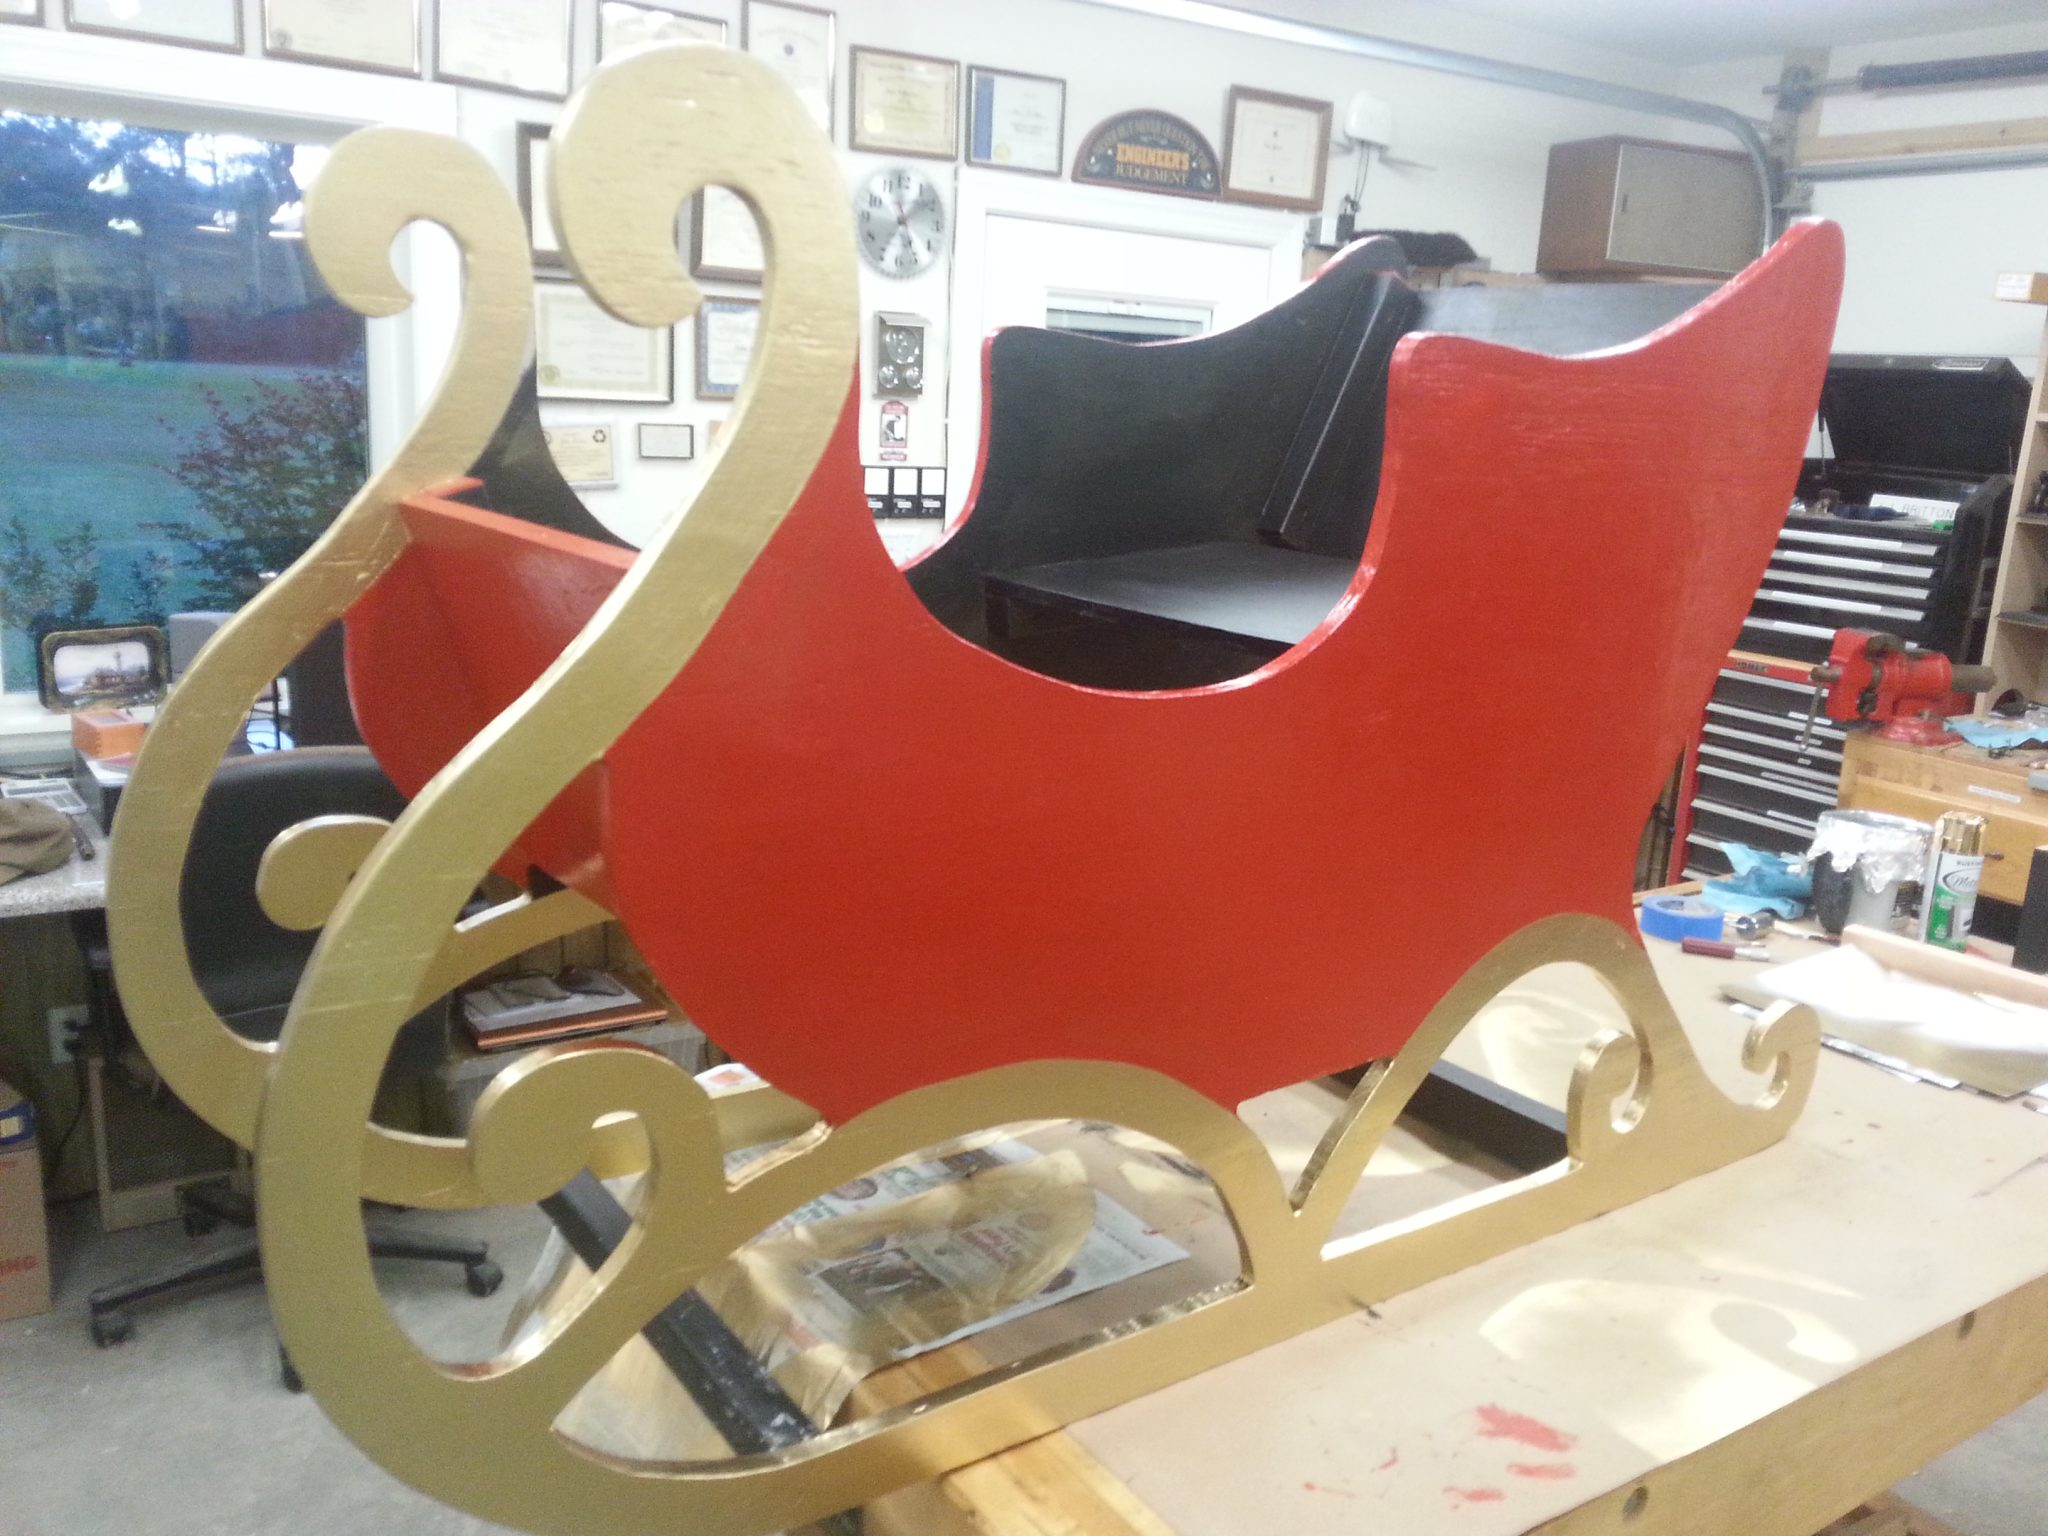 The sleigh sides were made of 1 sheet of plywood and painted. Plywood boxes were decorated by others to become Christmas gifts